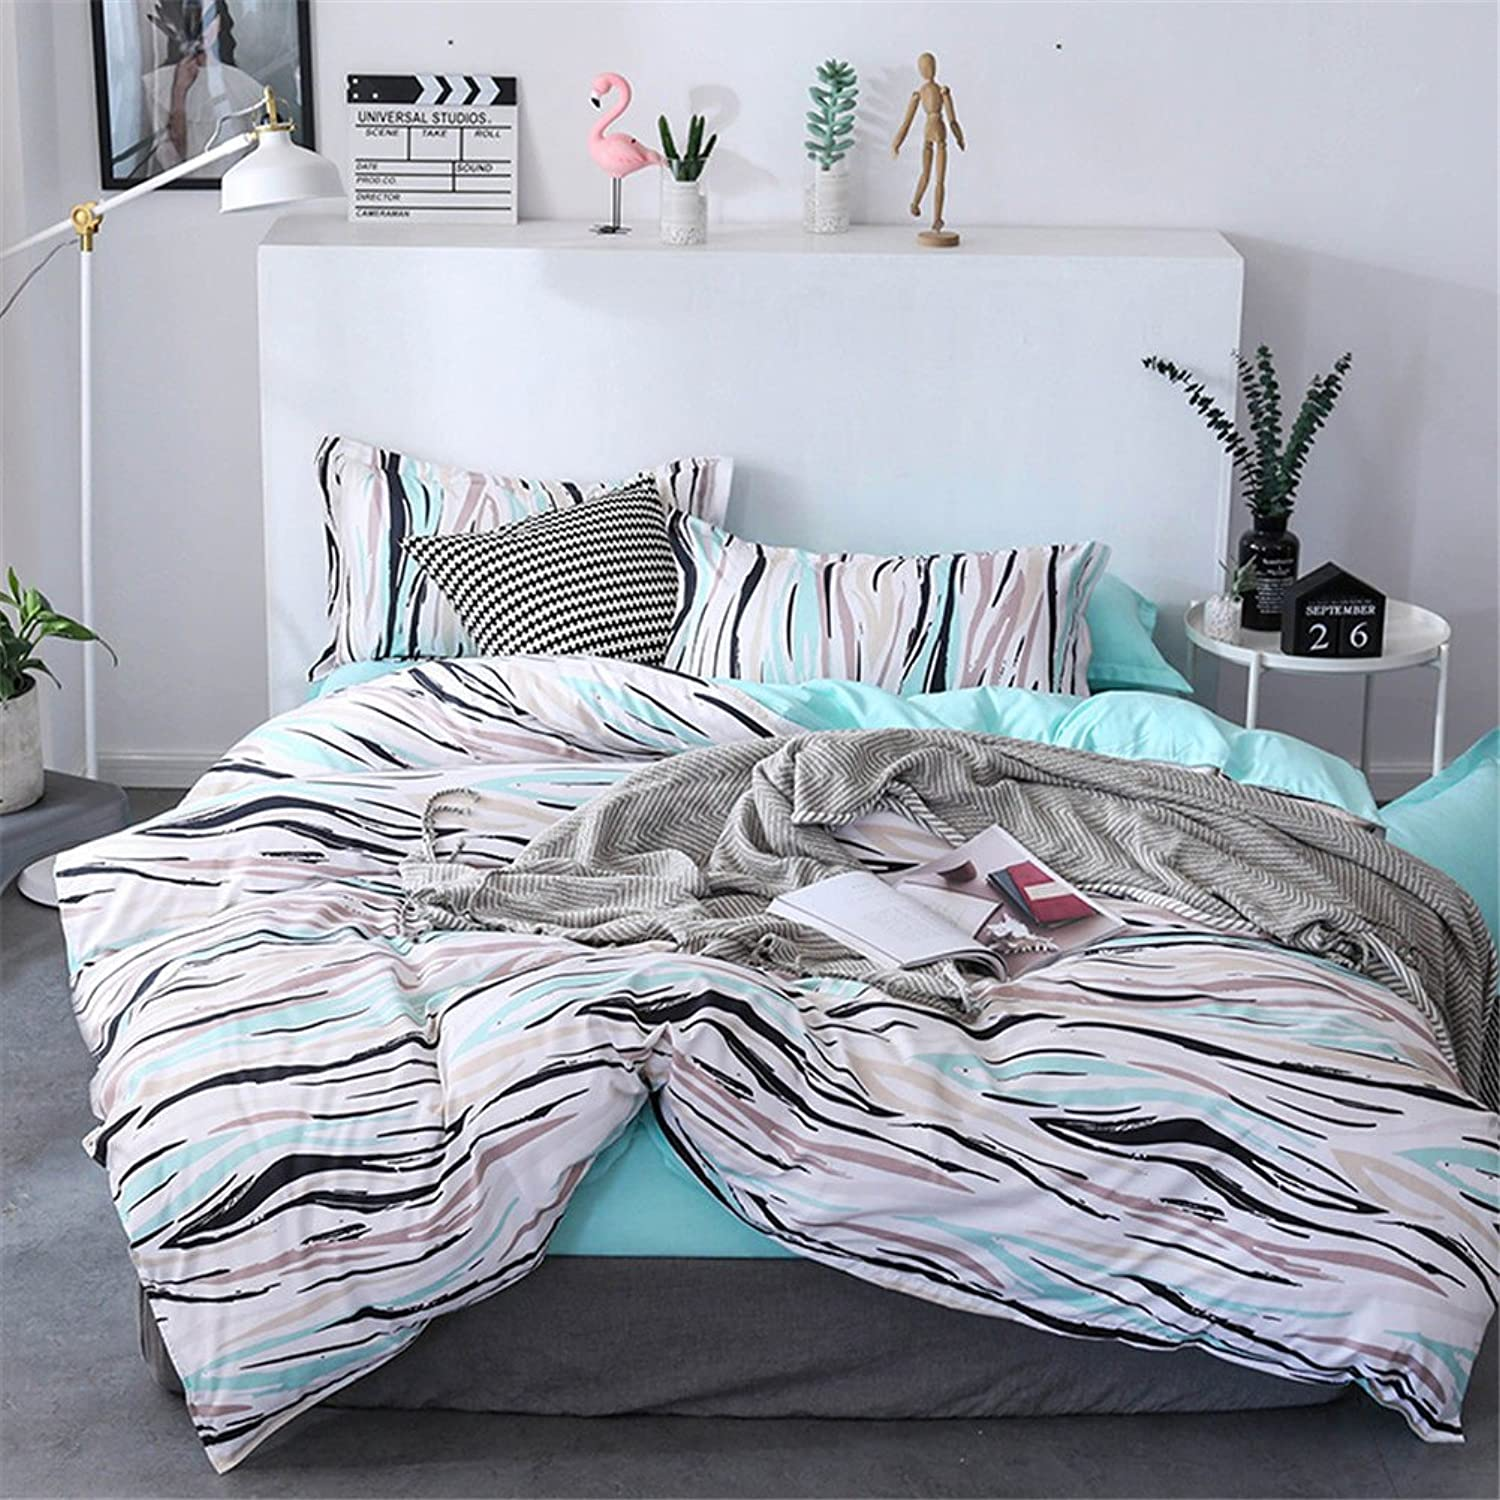 The Multicoloured Green Reversible Irregular Pattern Duvet Cover Set Soft Breathable Boys Girls 4ps(Kingxz)